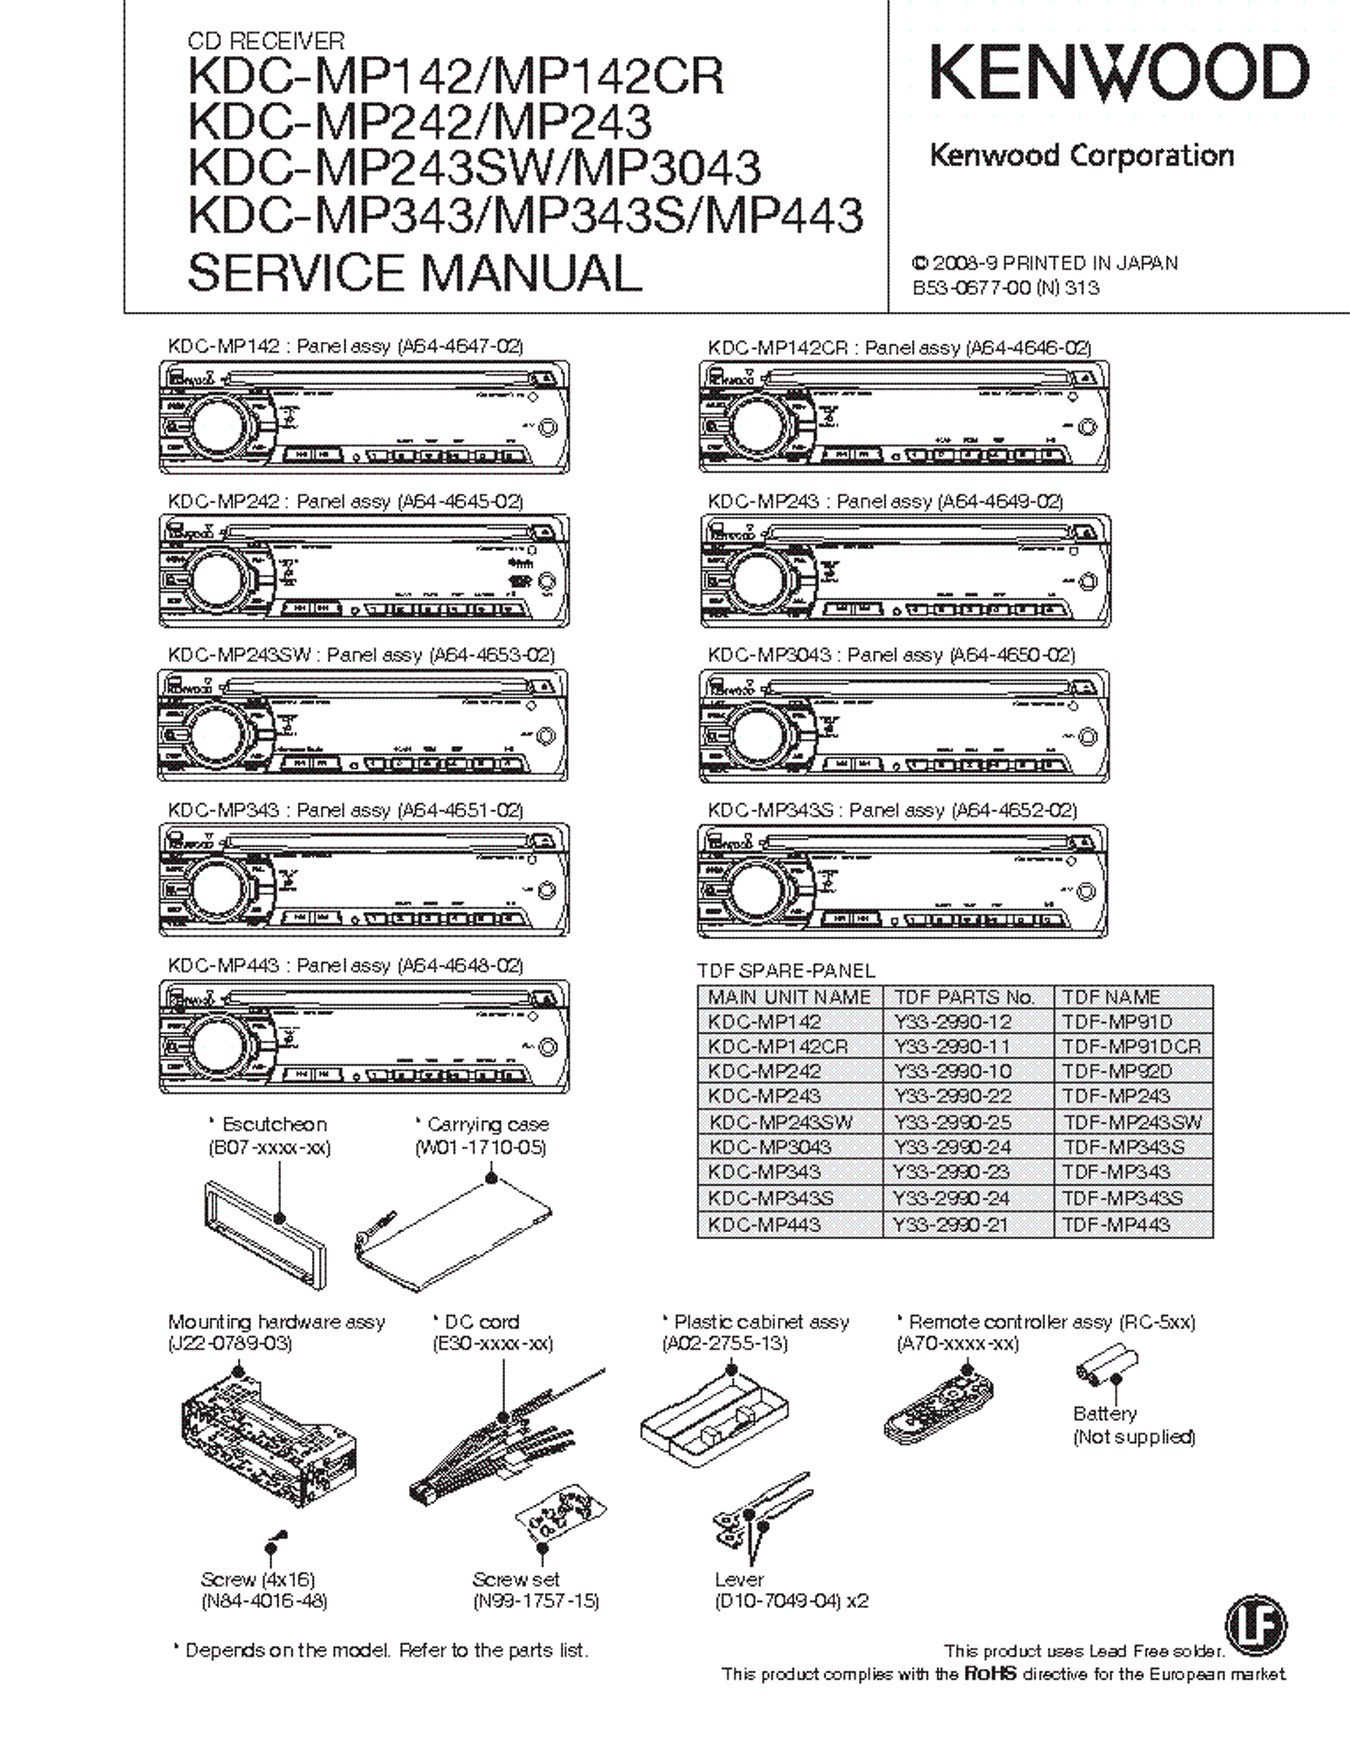 Kenwood Kdc-138 Wiring Diagram from static-cdn.imageservice.cloud